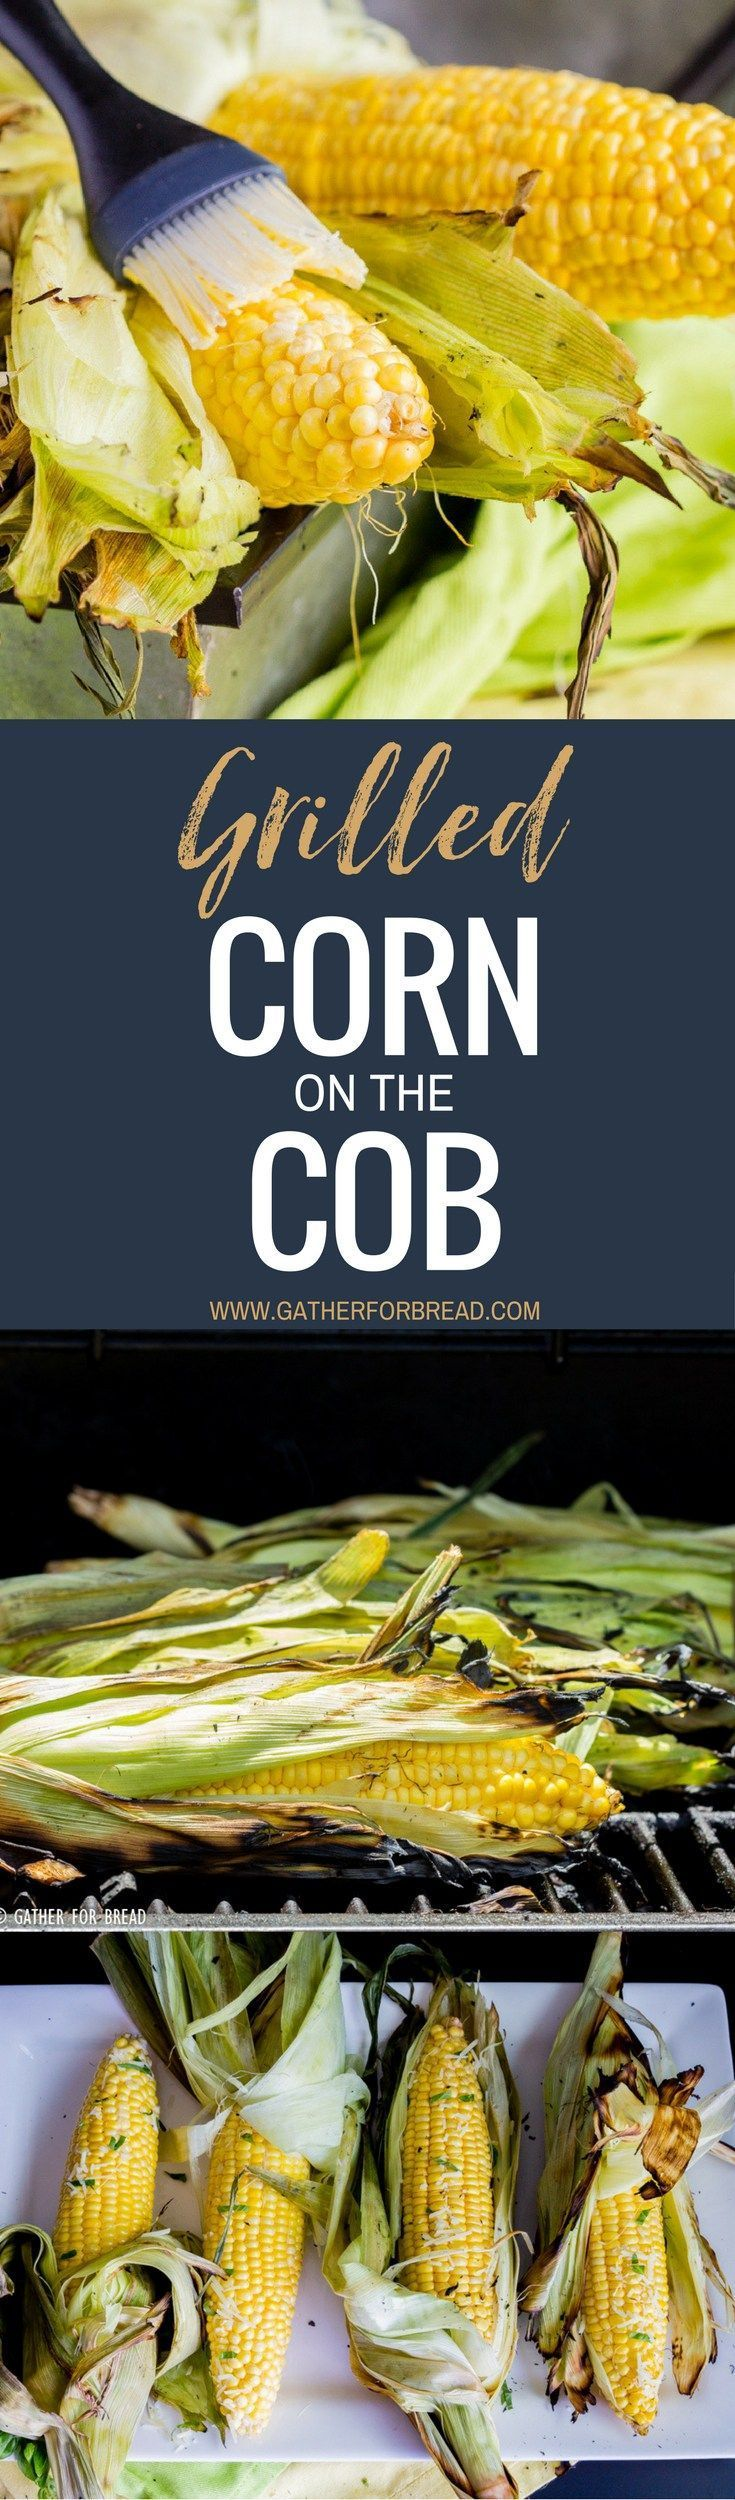 Grilled Corn on the Cob - How to Grill Corn- Grilling corn is an easy BBQ side dish recipe for summer. This corn is grilled to perfection and topped with butter, basil, and Parmesan cheese!